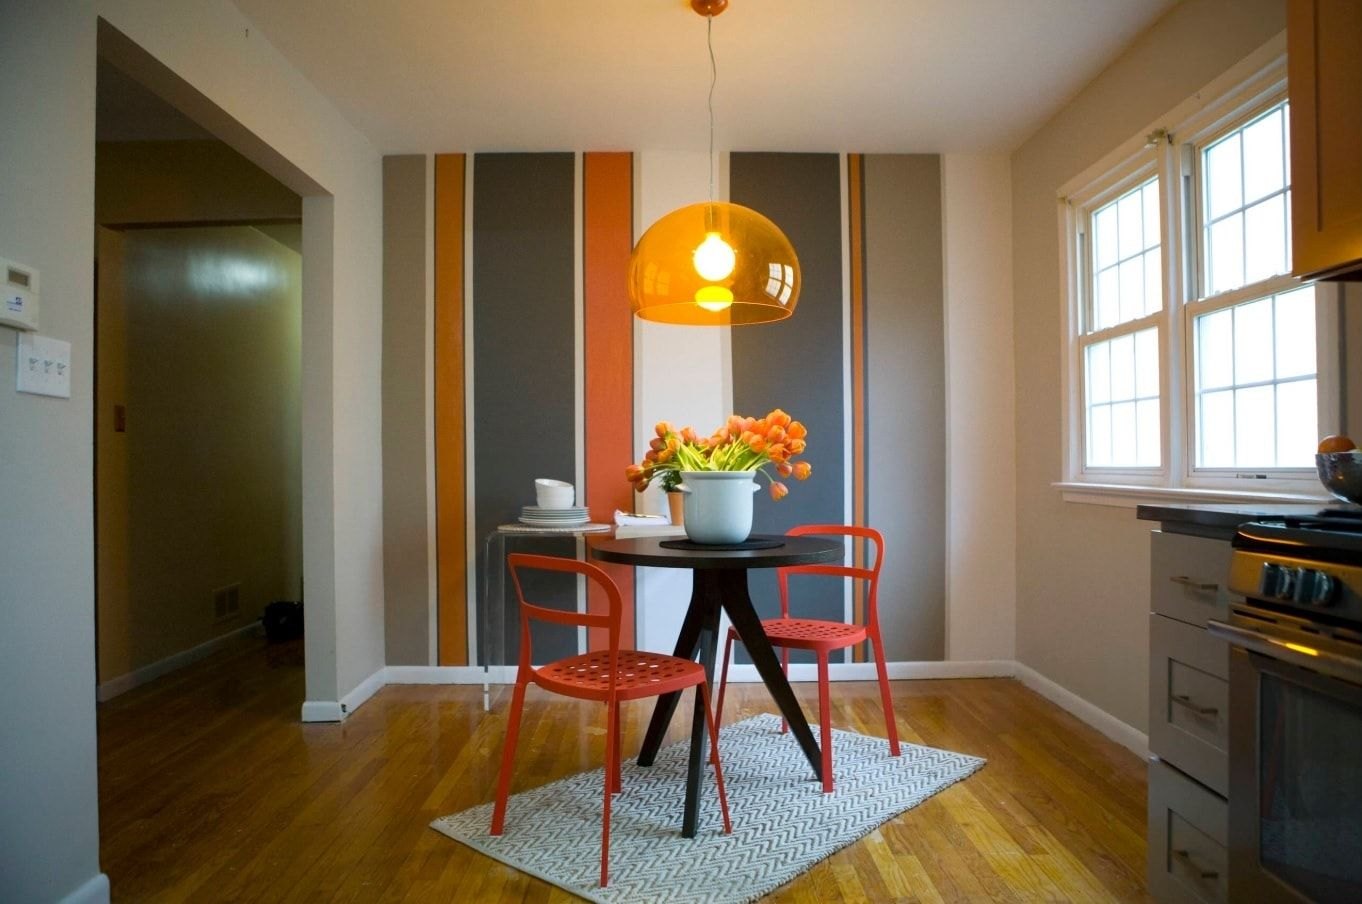 Simple but original design of the dining room with orange chairs and colorful stripes on the accent wall